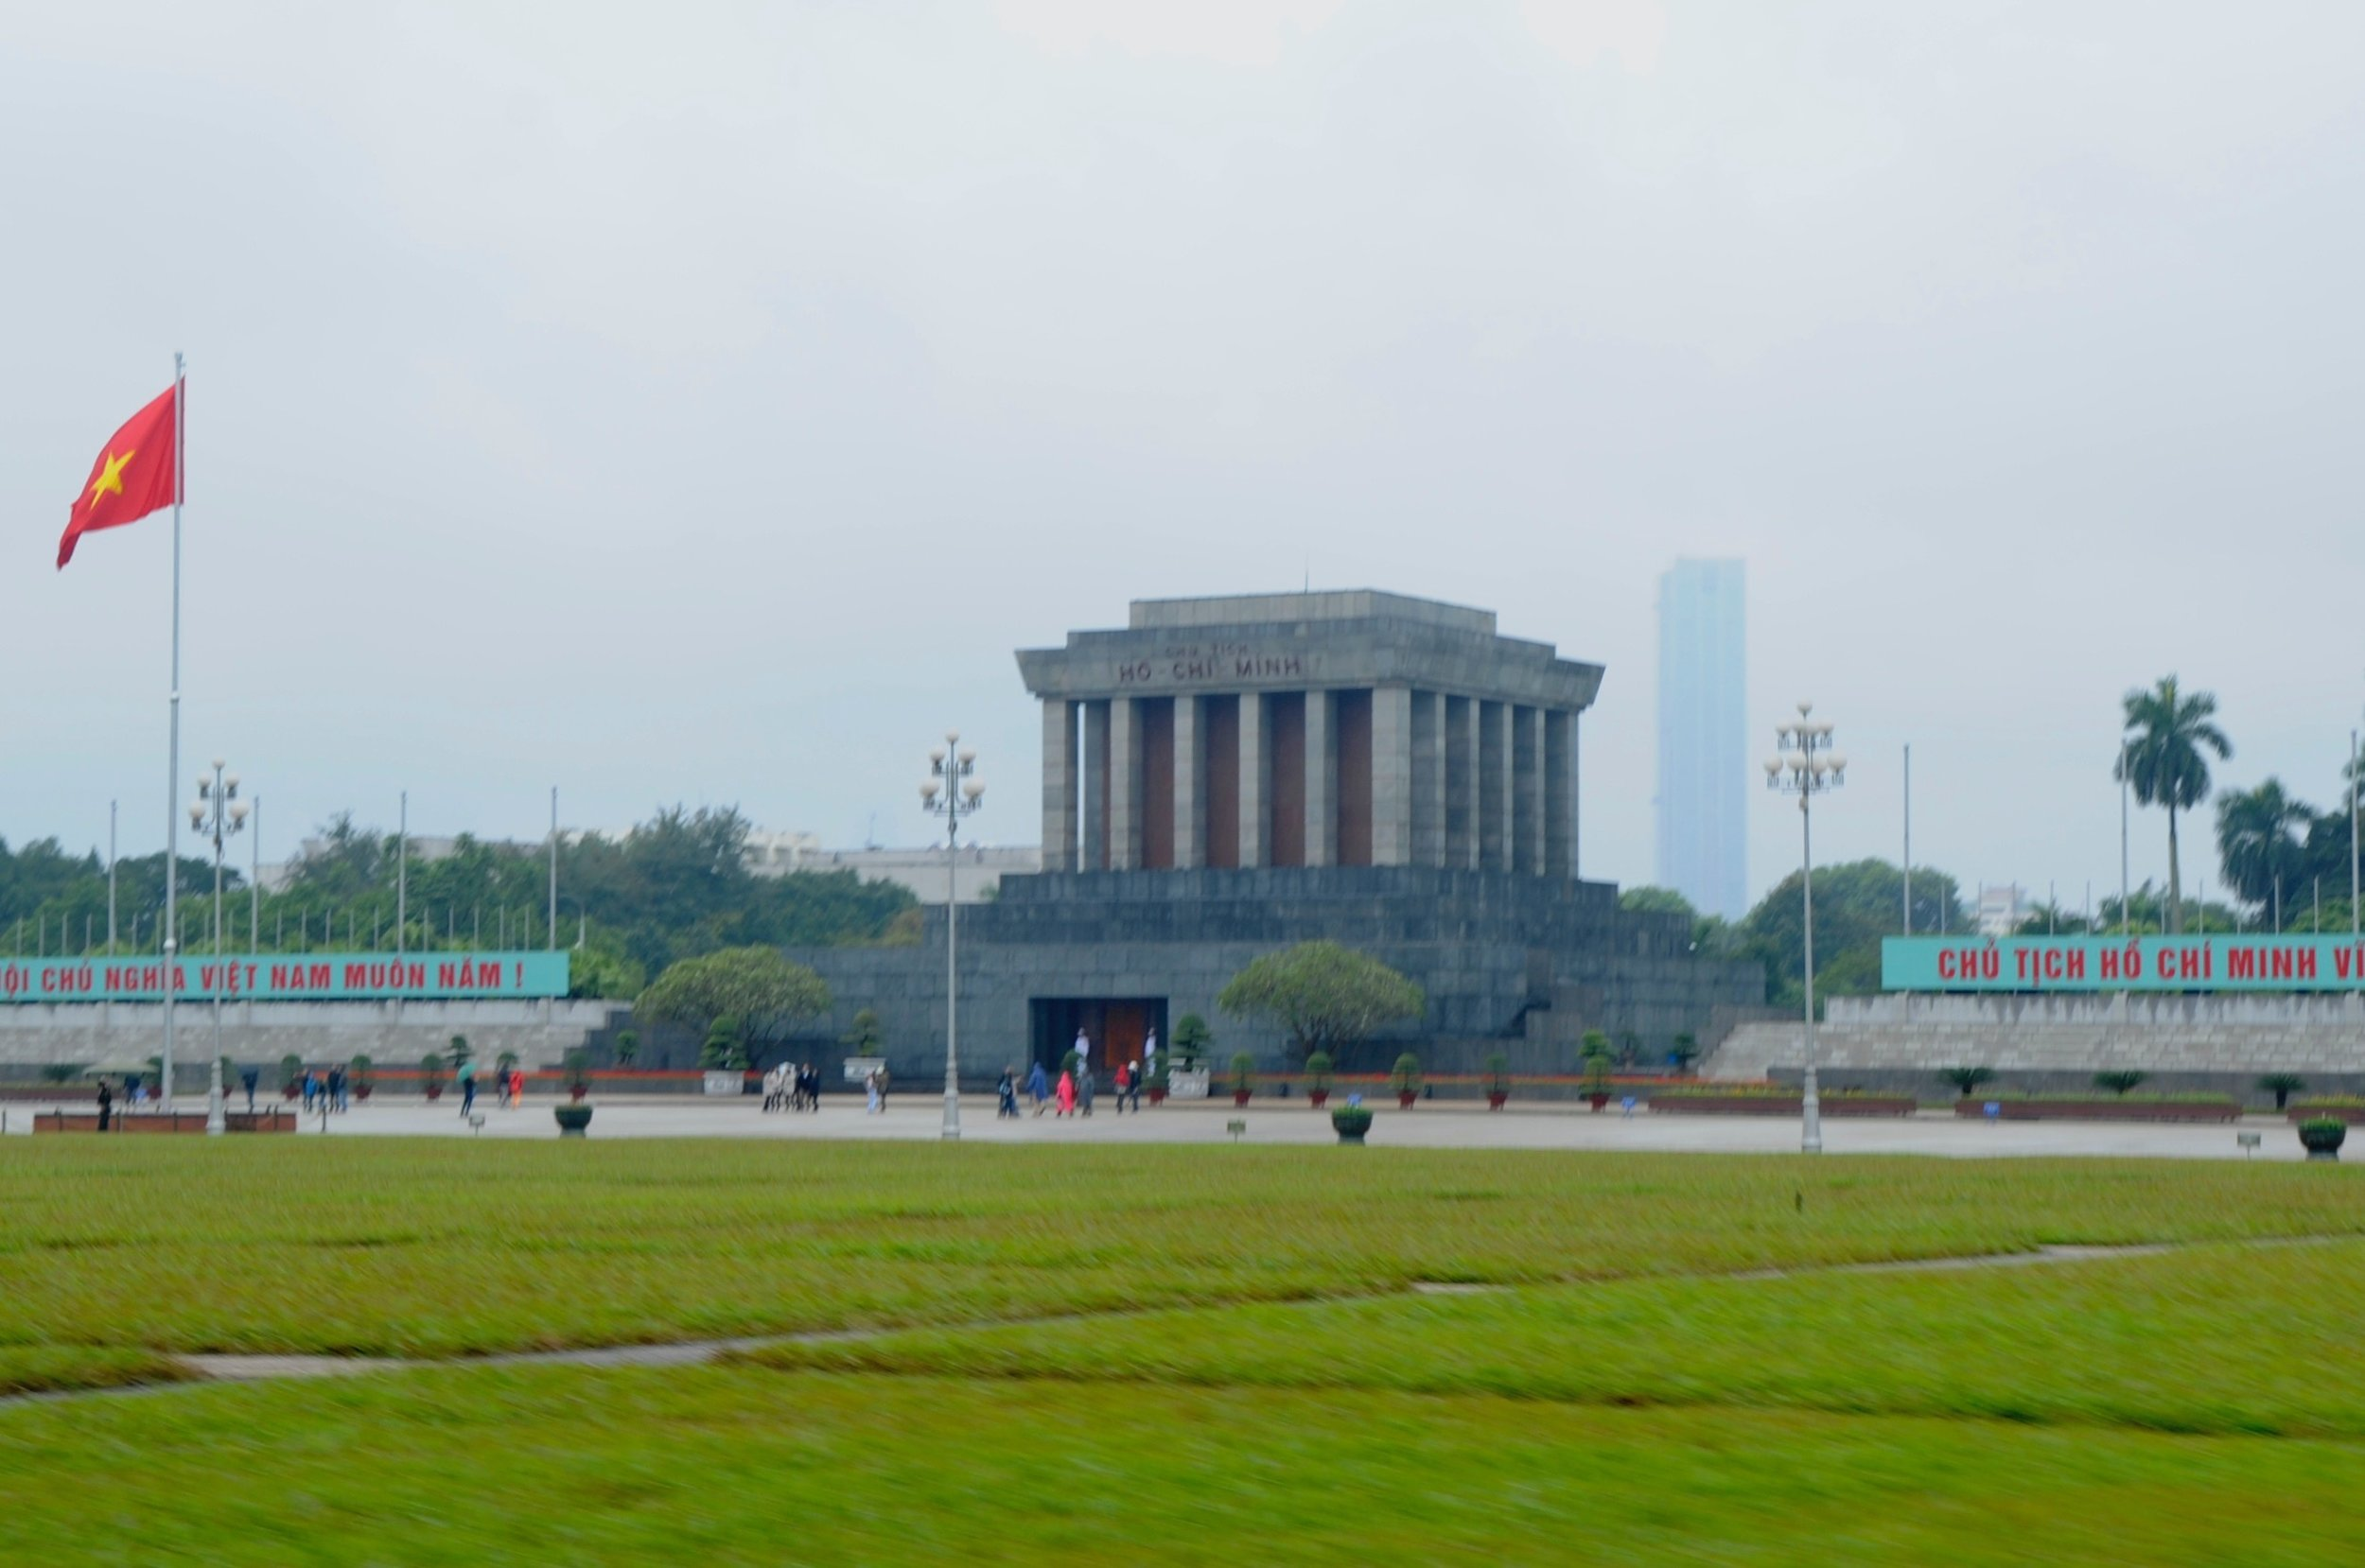 Chairman Ho's tomb in central Hanoi.